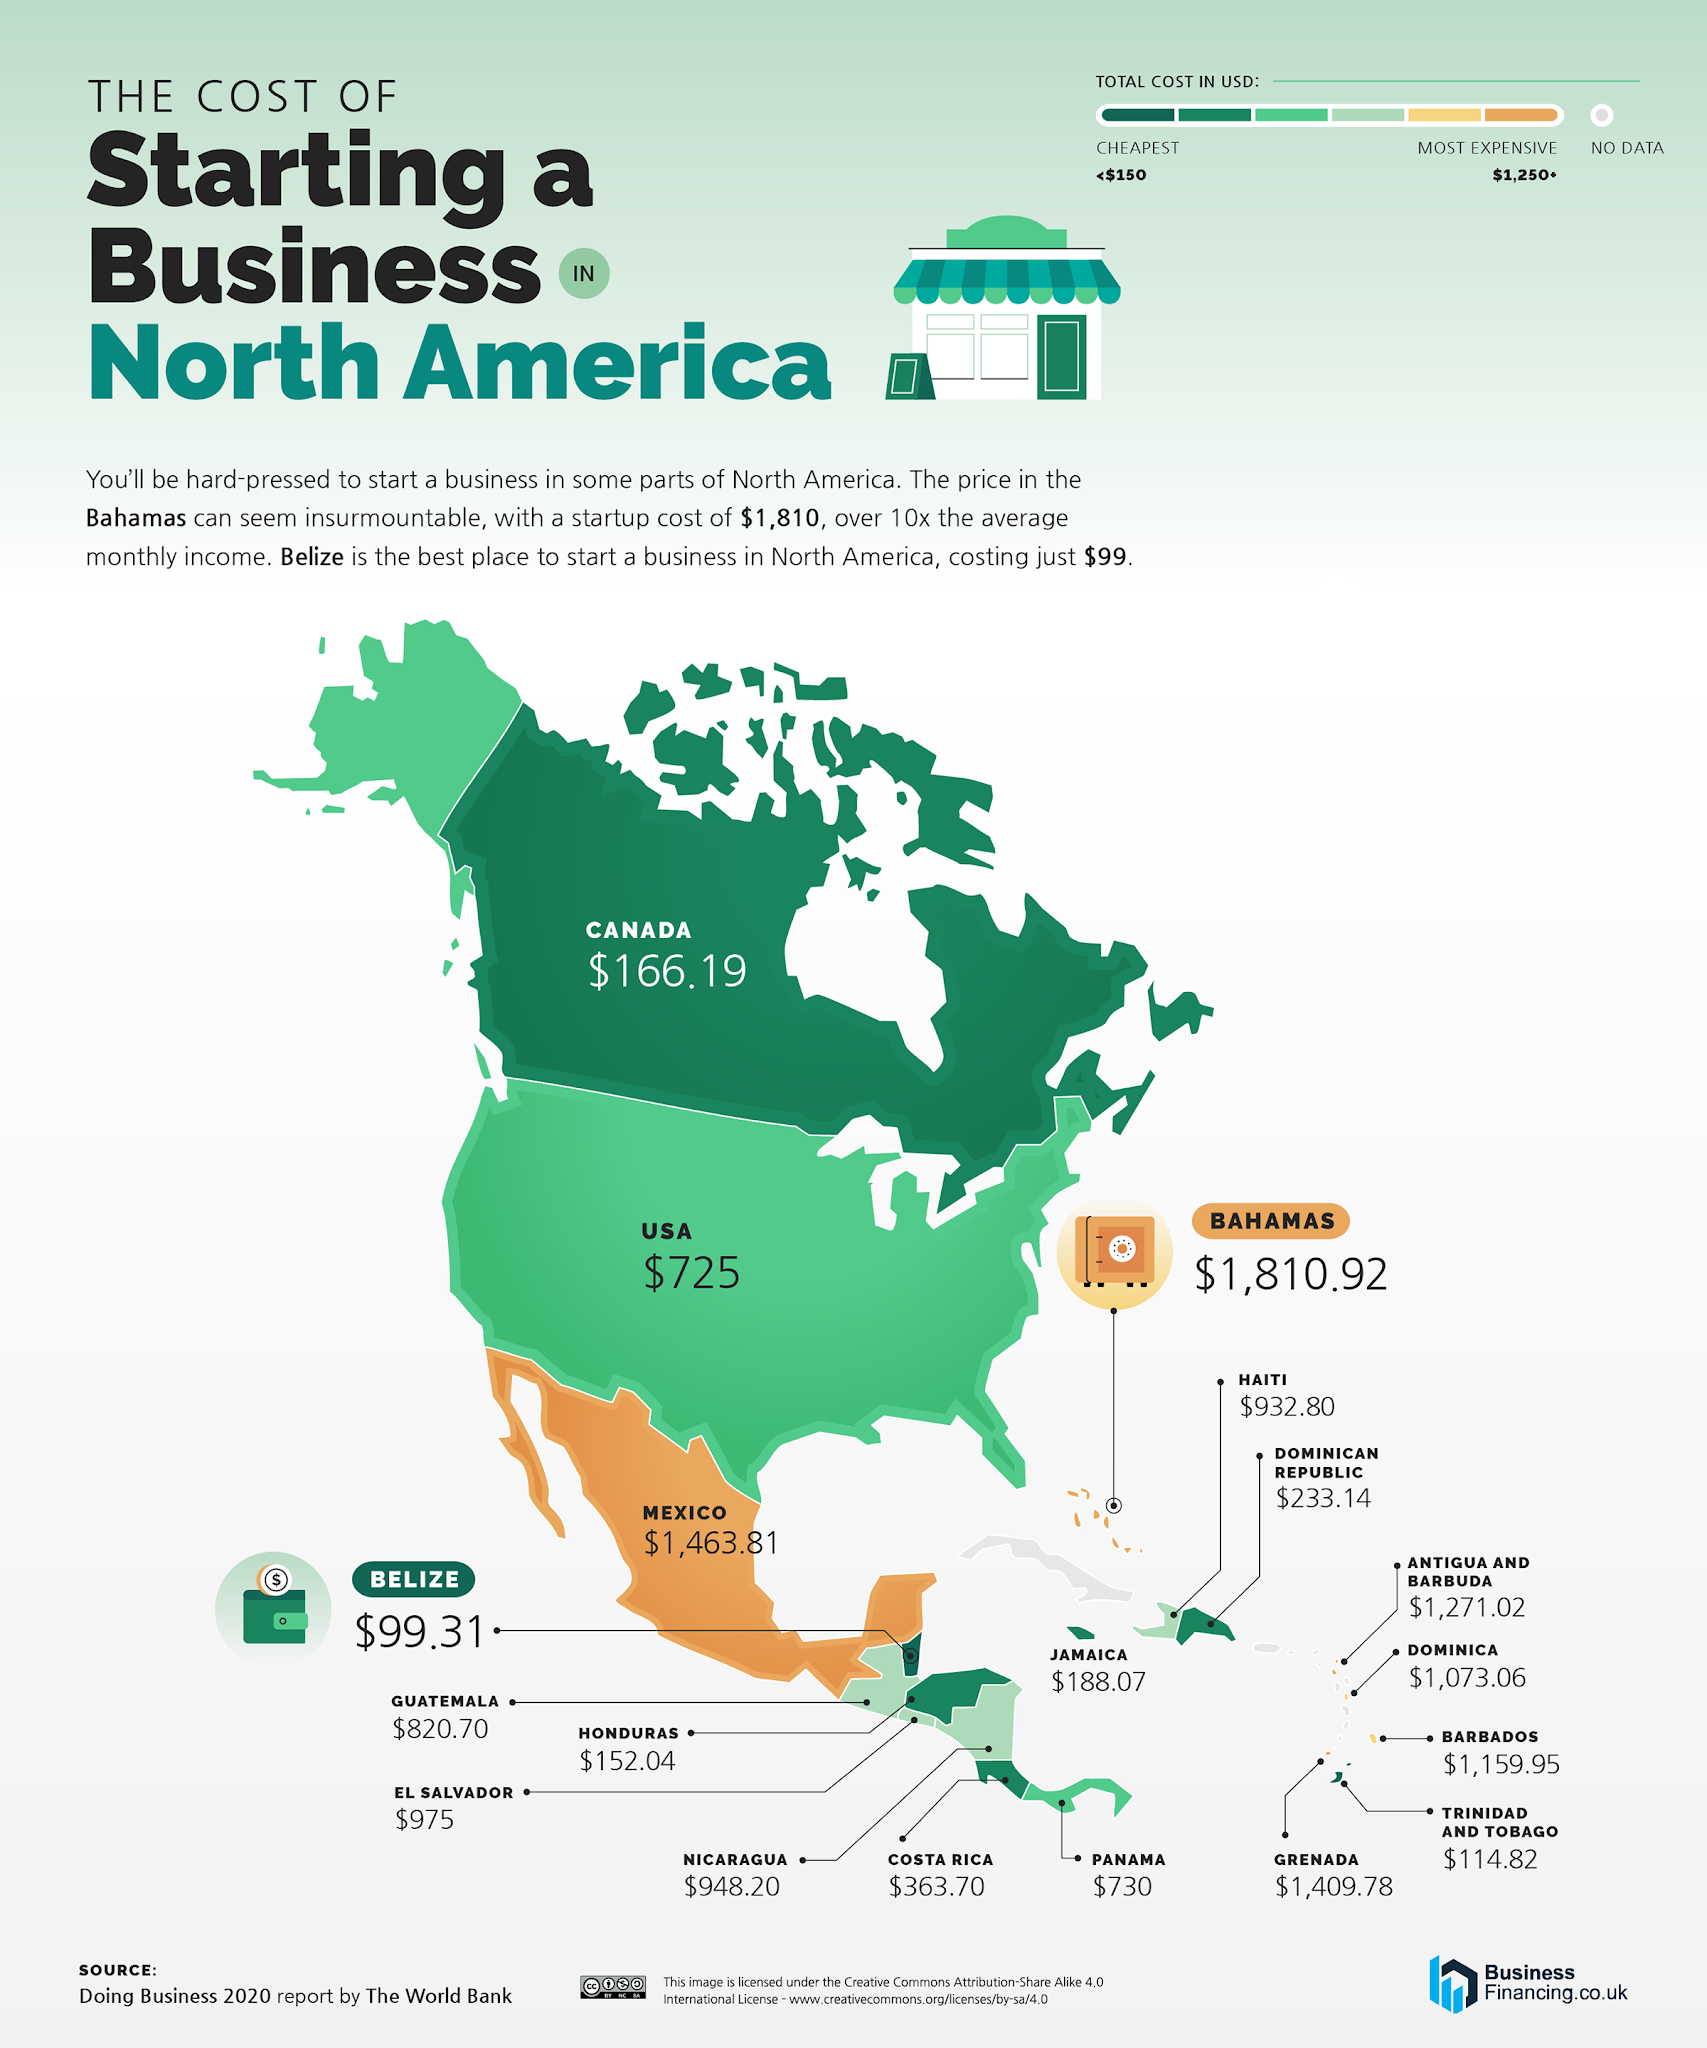 The Cost of Starting a Business in North America